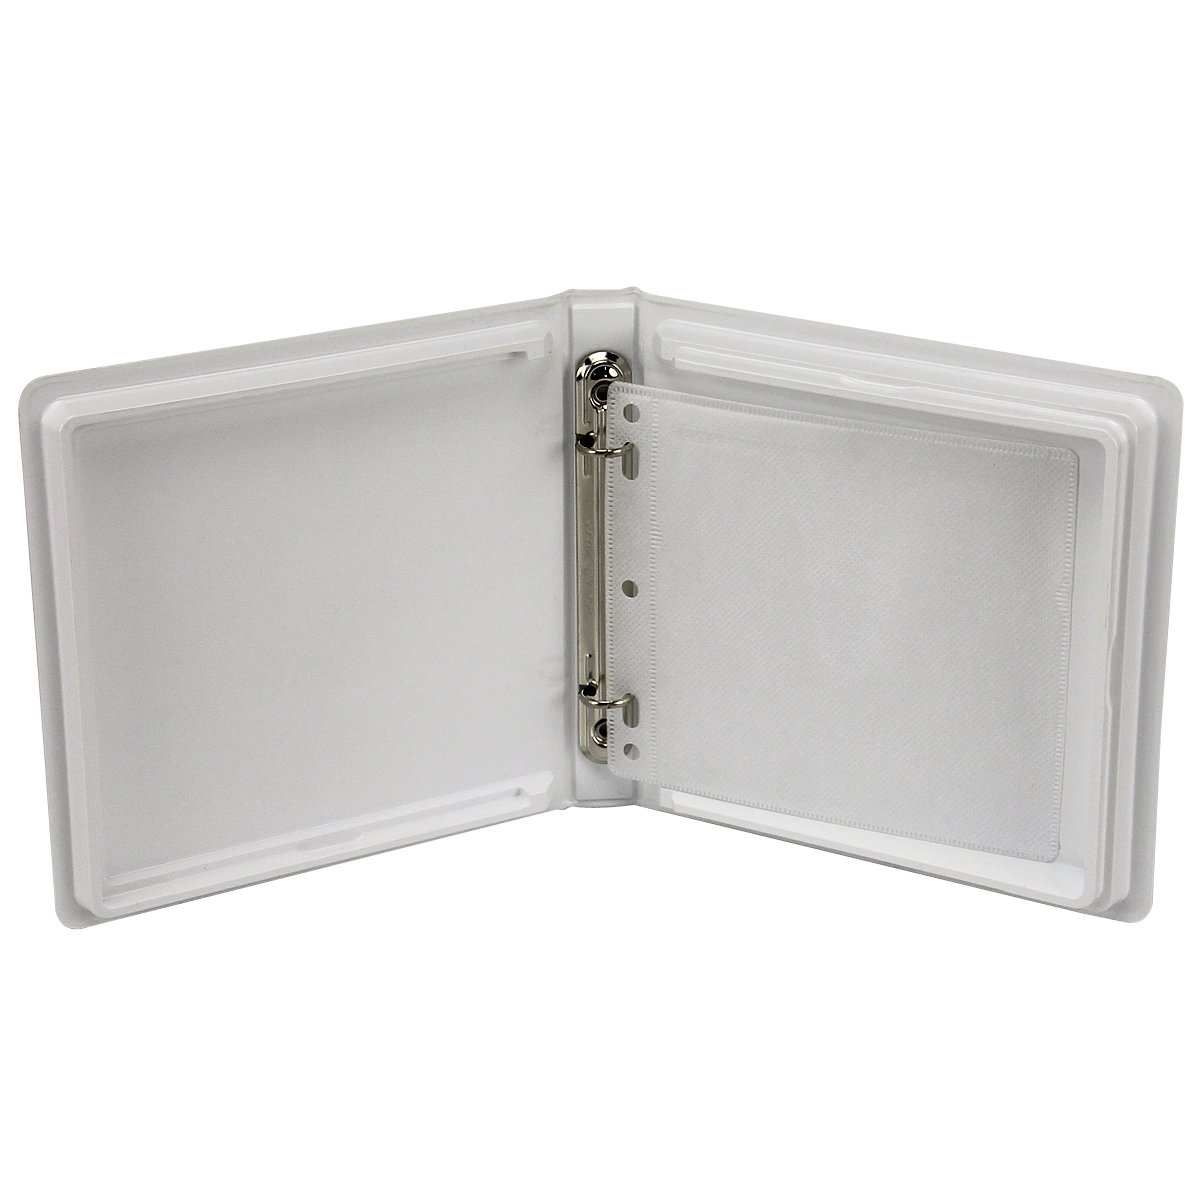 CD/DVD Binder Albums with Lined Pages-White-2 Capacity-7'' x 6-3/4'' x 1''